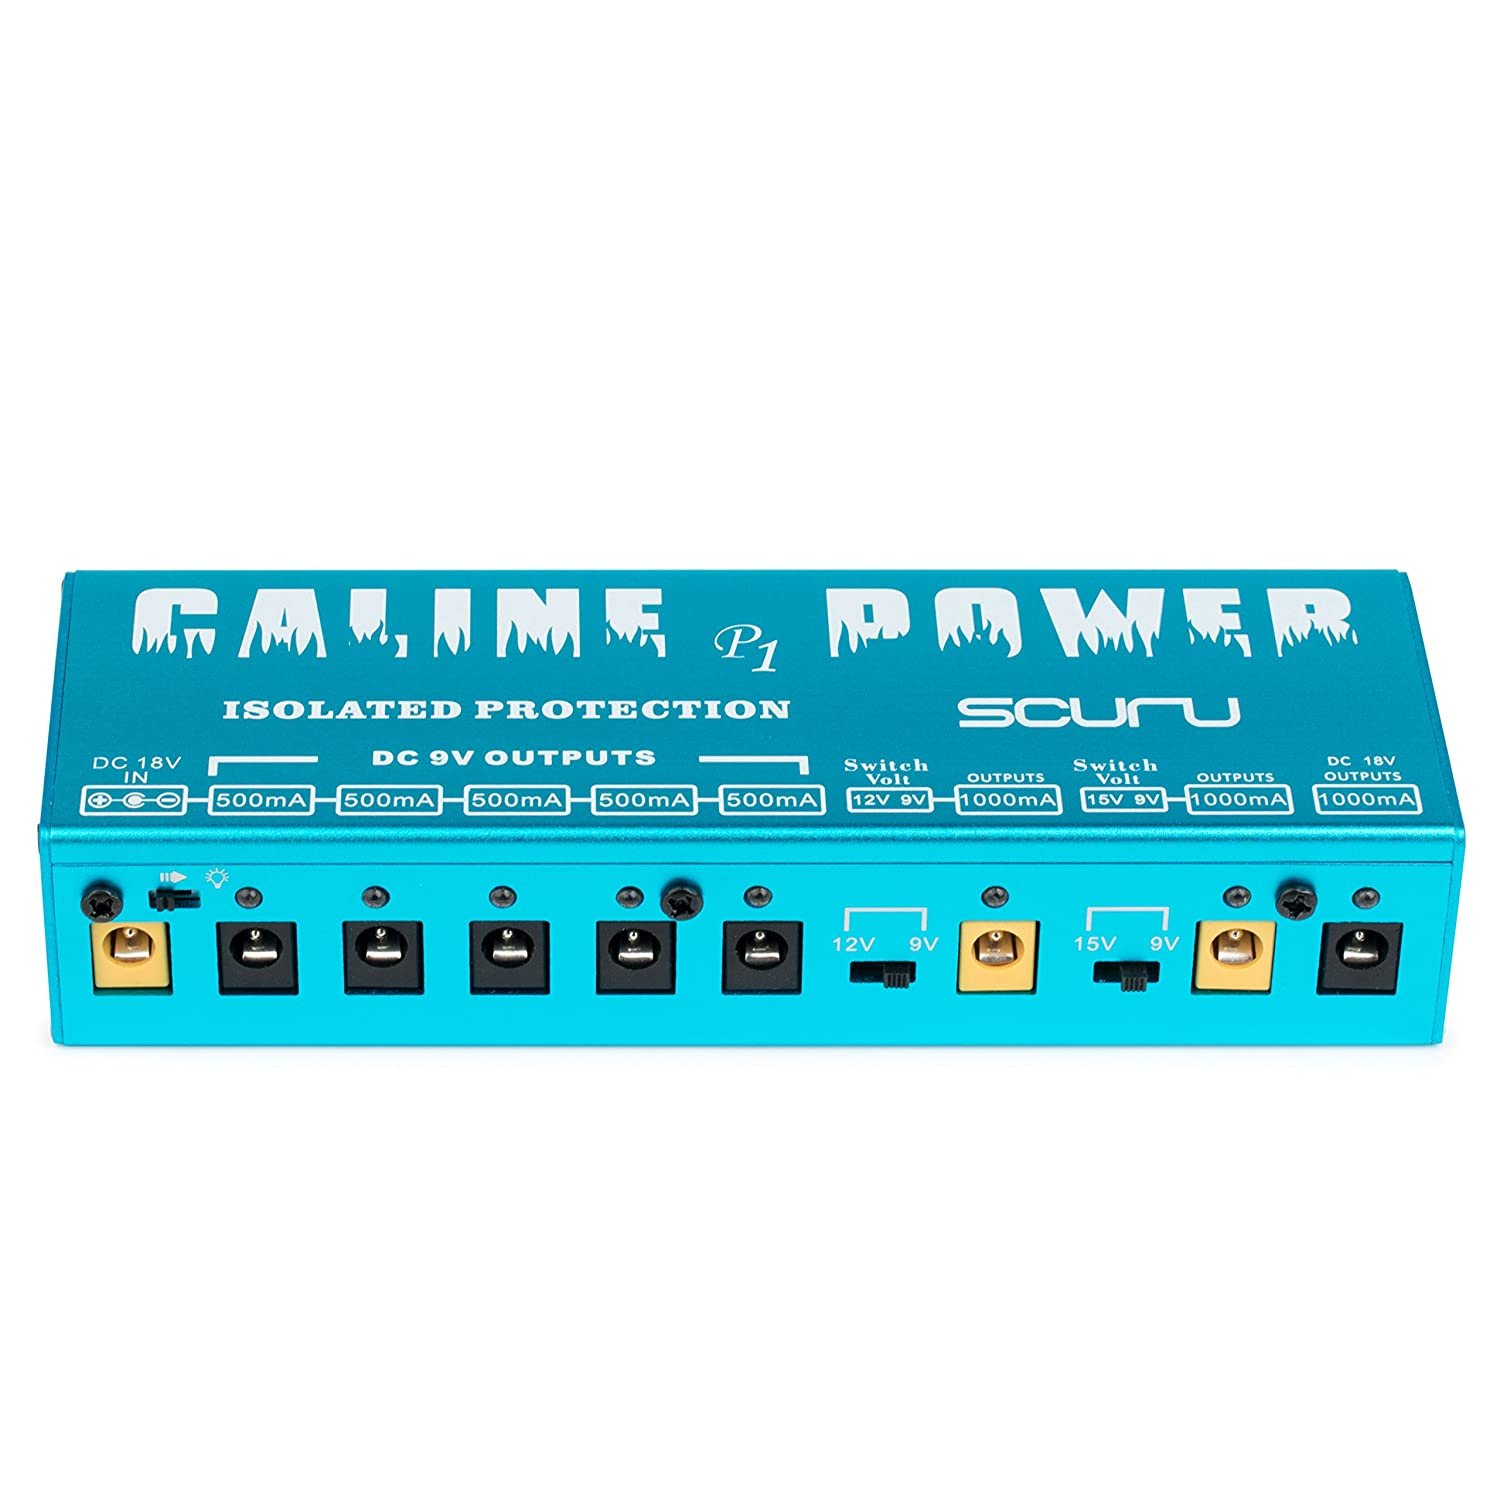 Caline P1 Pedal Power Supply SCURU 8 Way Isolated Protection 9V 12V 15V 18V Power Supply for Guitar Pedals